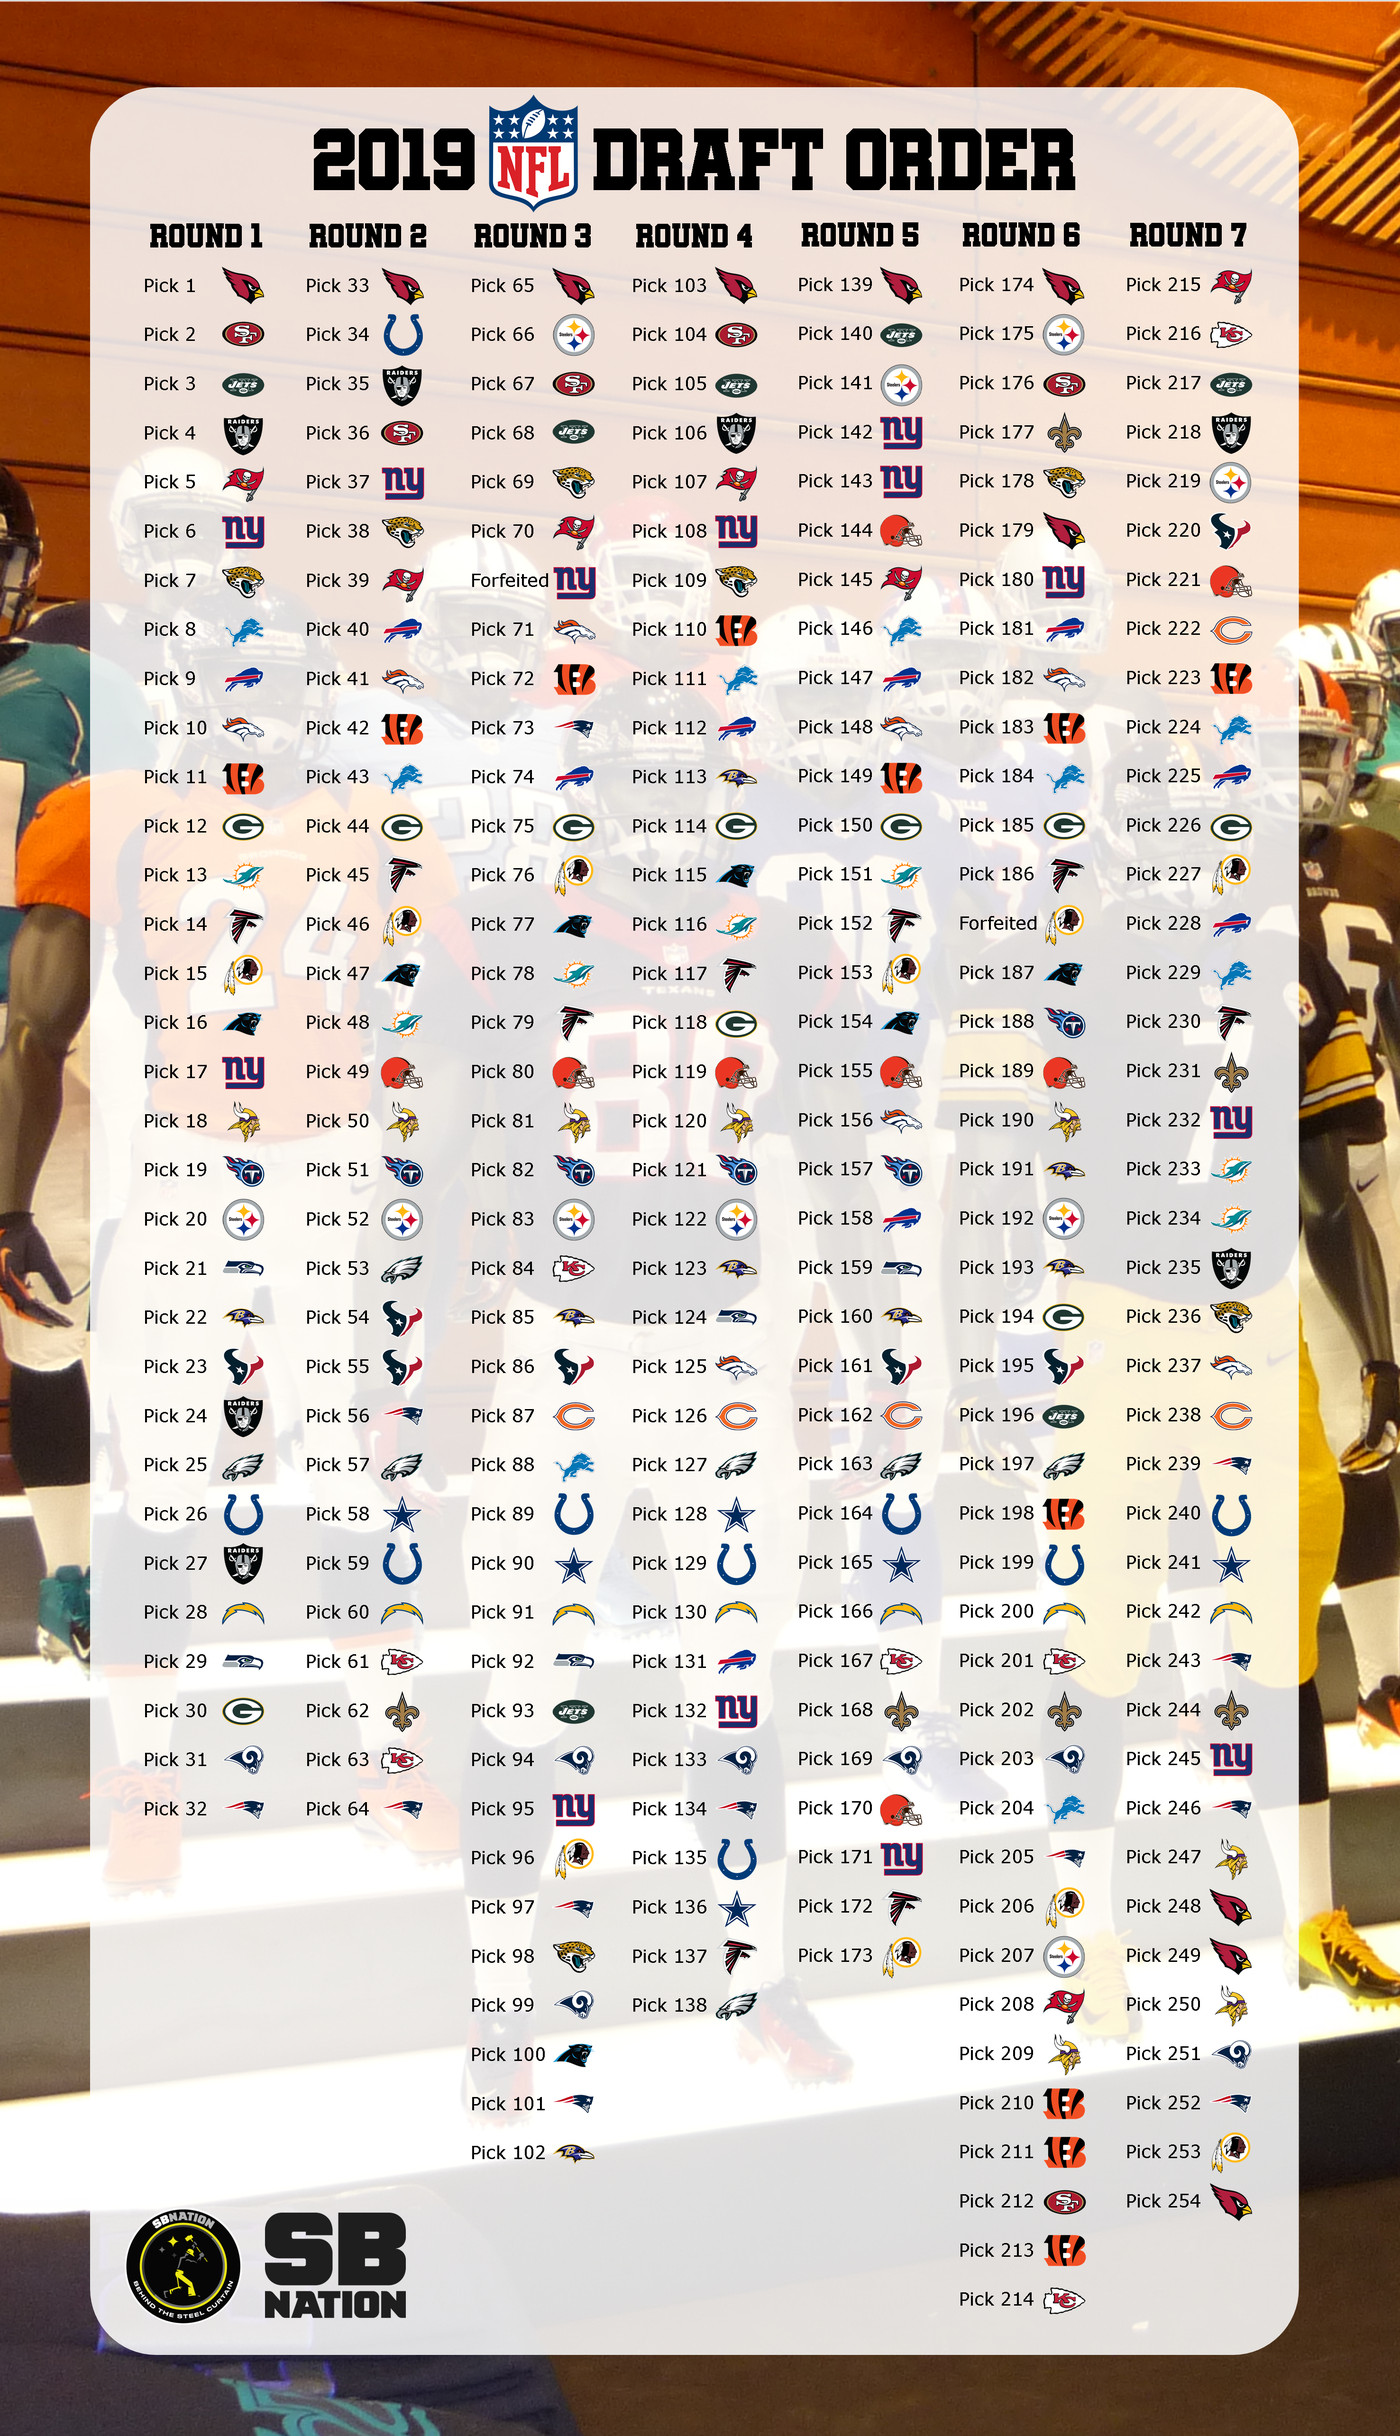 2019 Nfl Draft Schedule Ultimate Pittsburgh Steelers fan guide to the 2019 NFL Draft